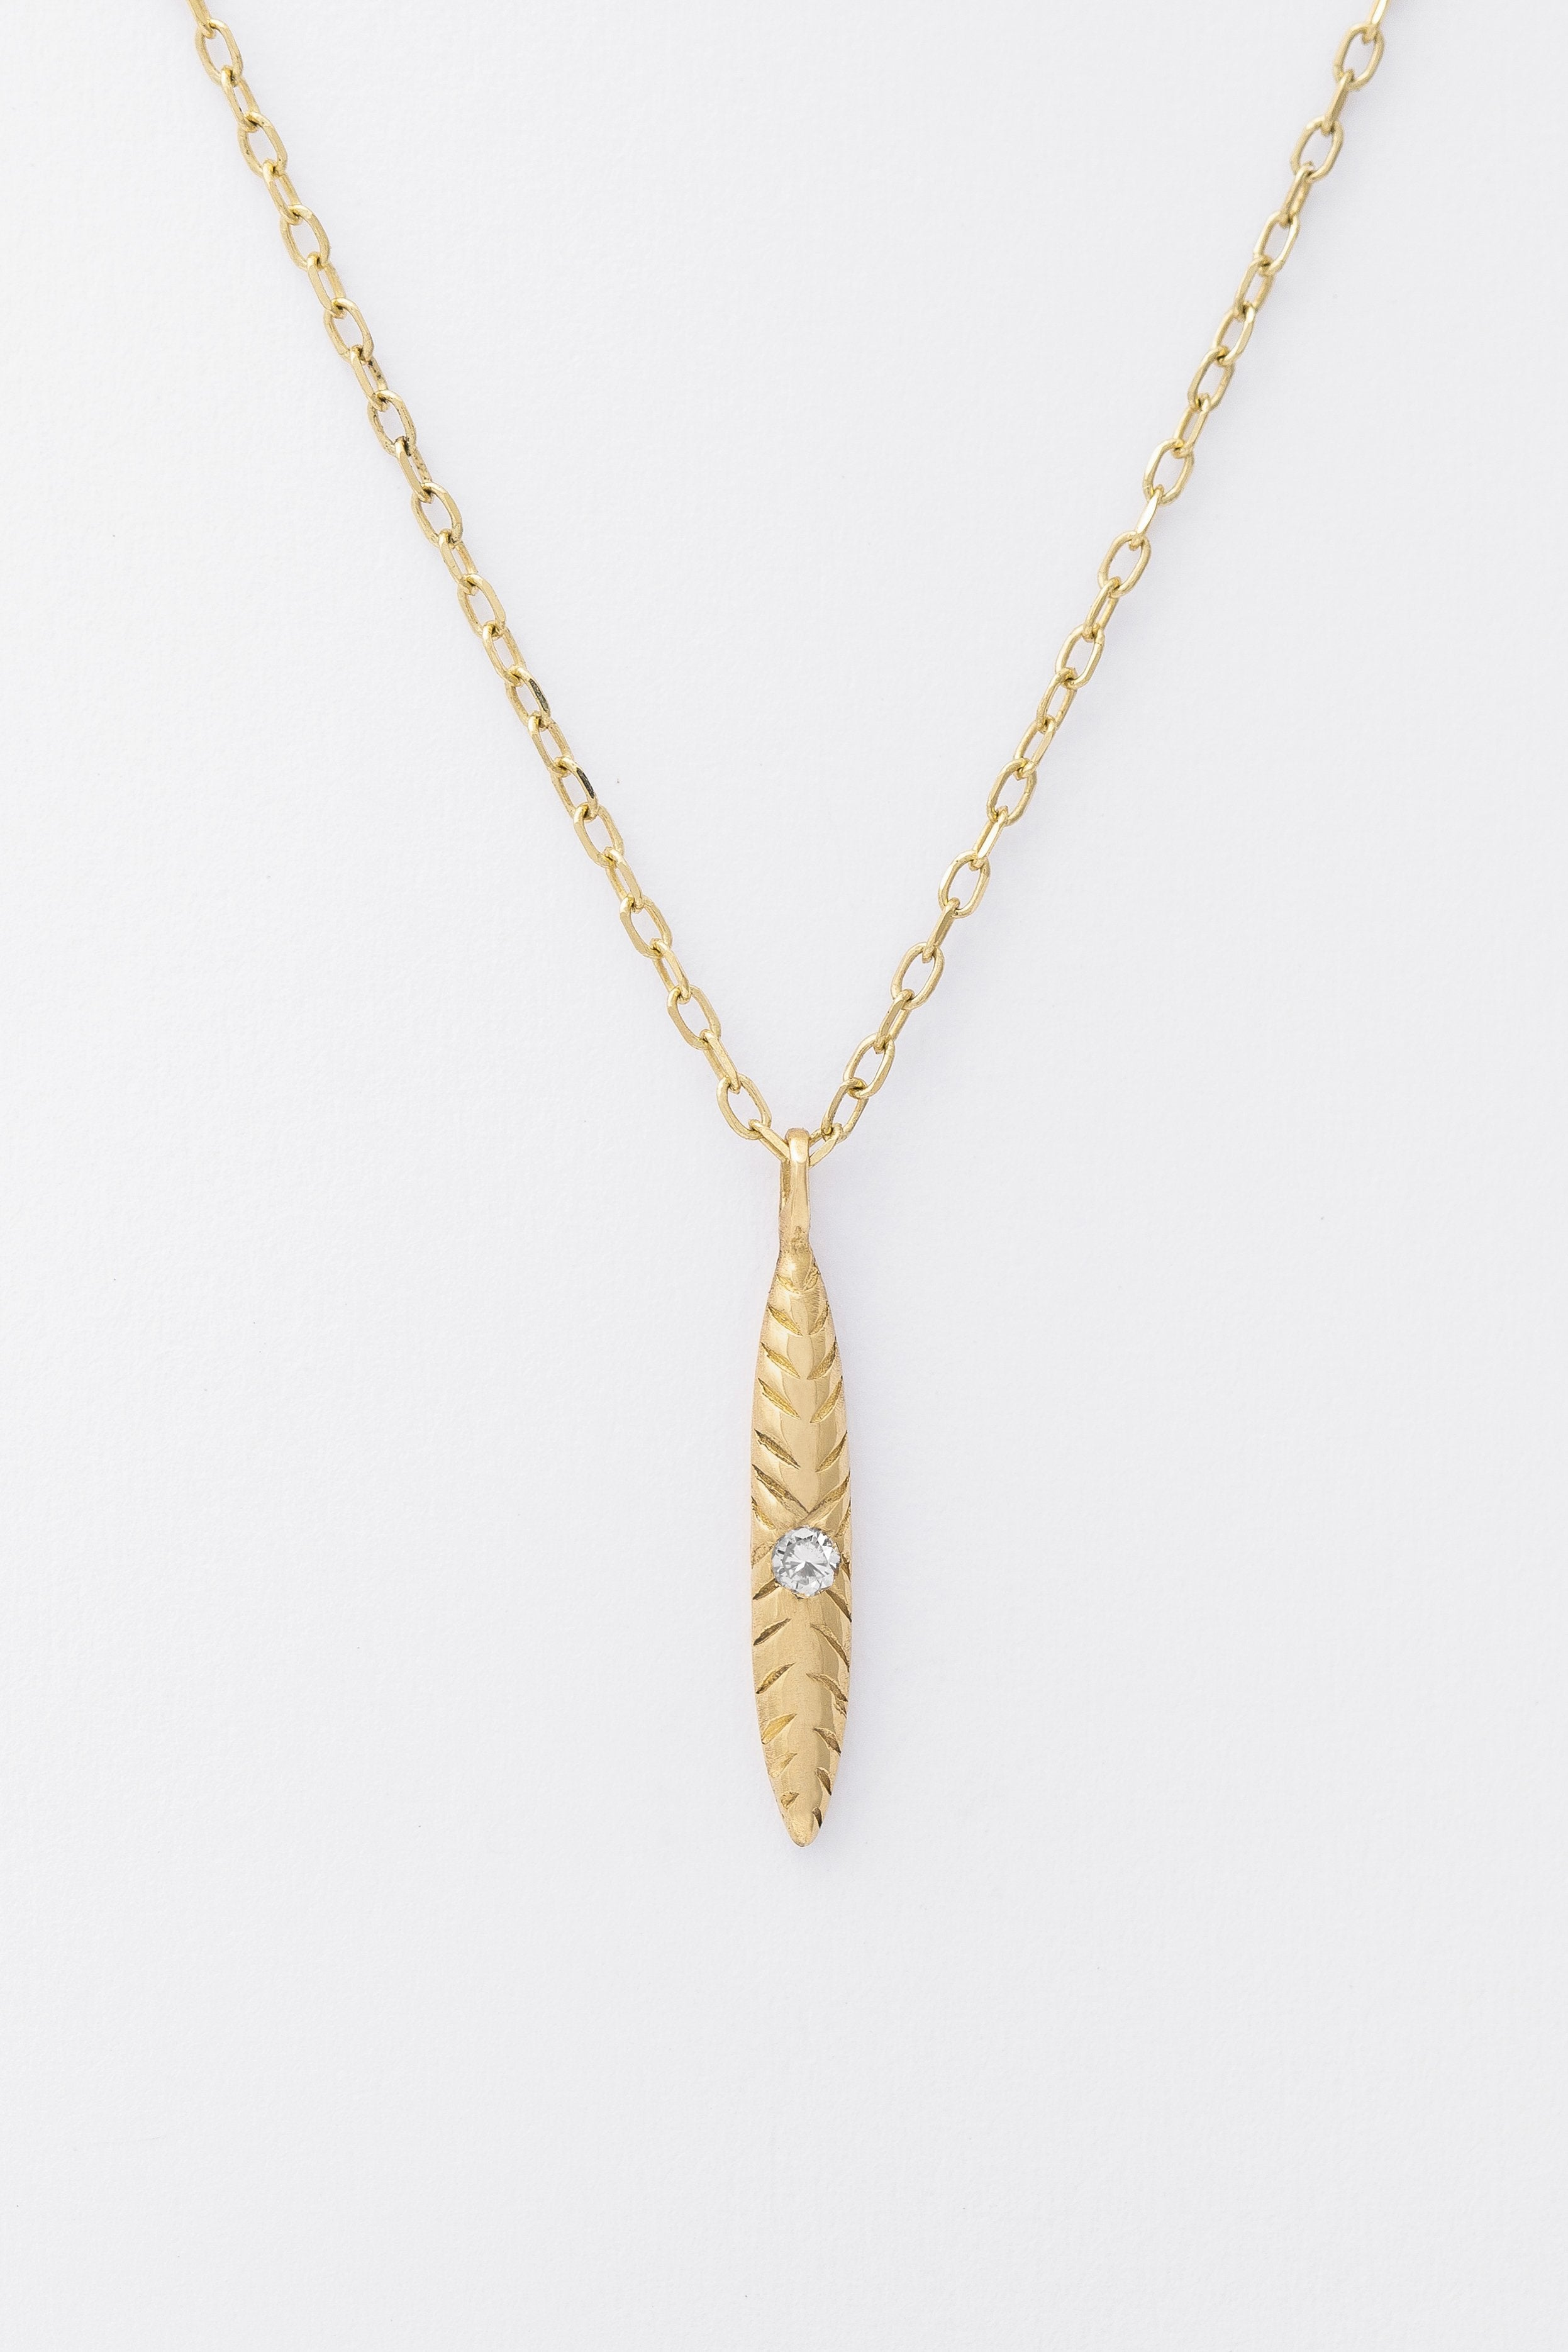 One Diamond Etched Ovate Necklace